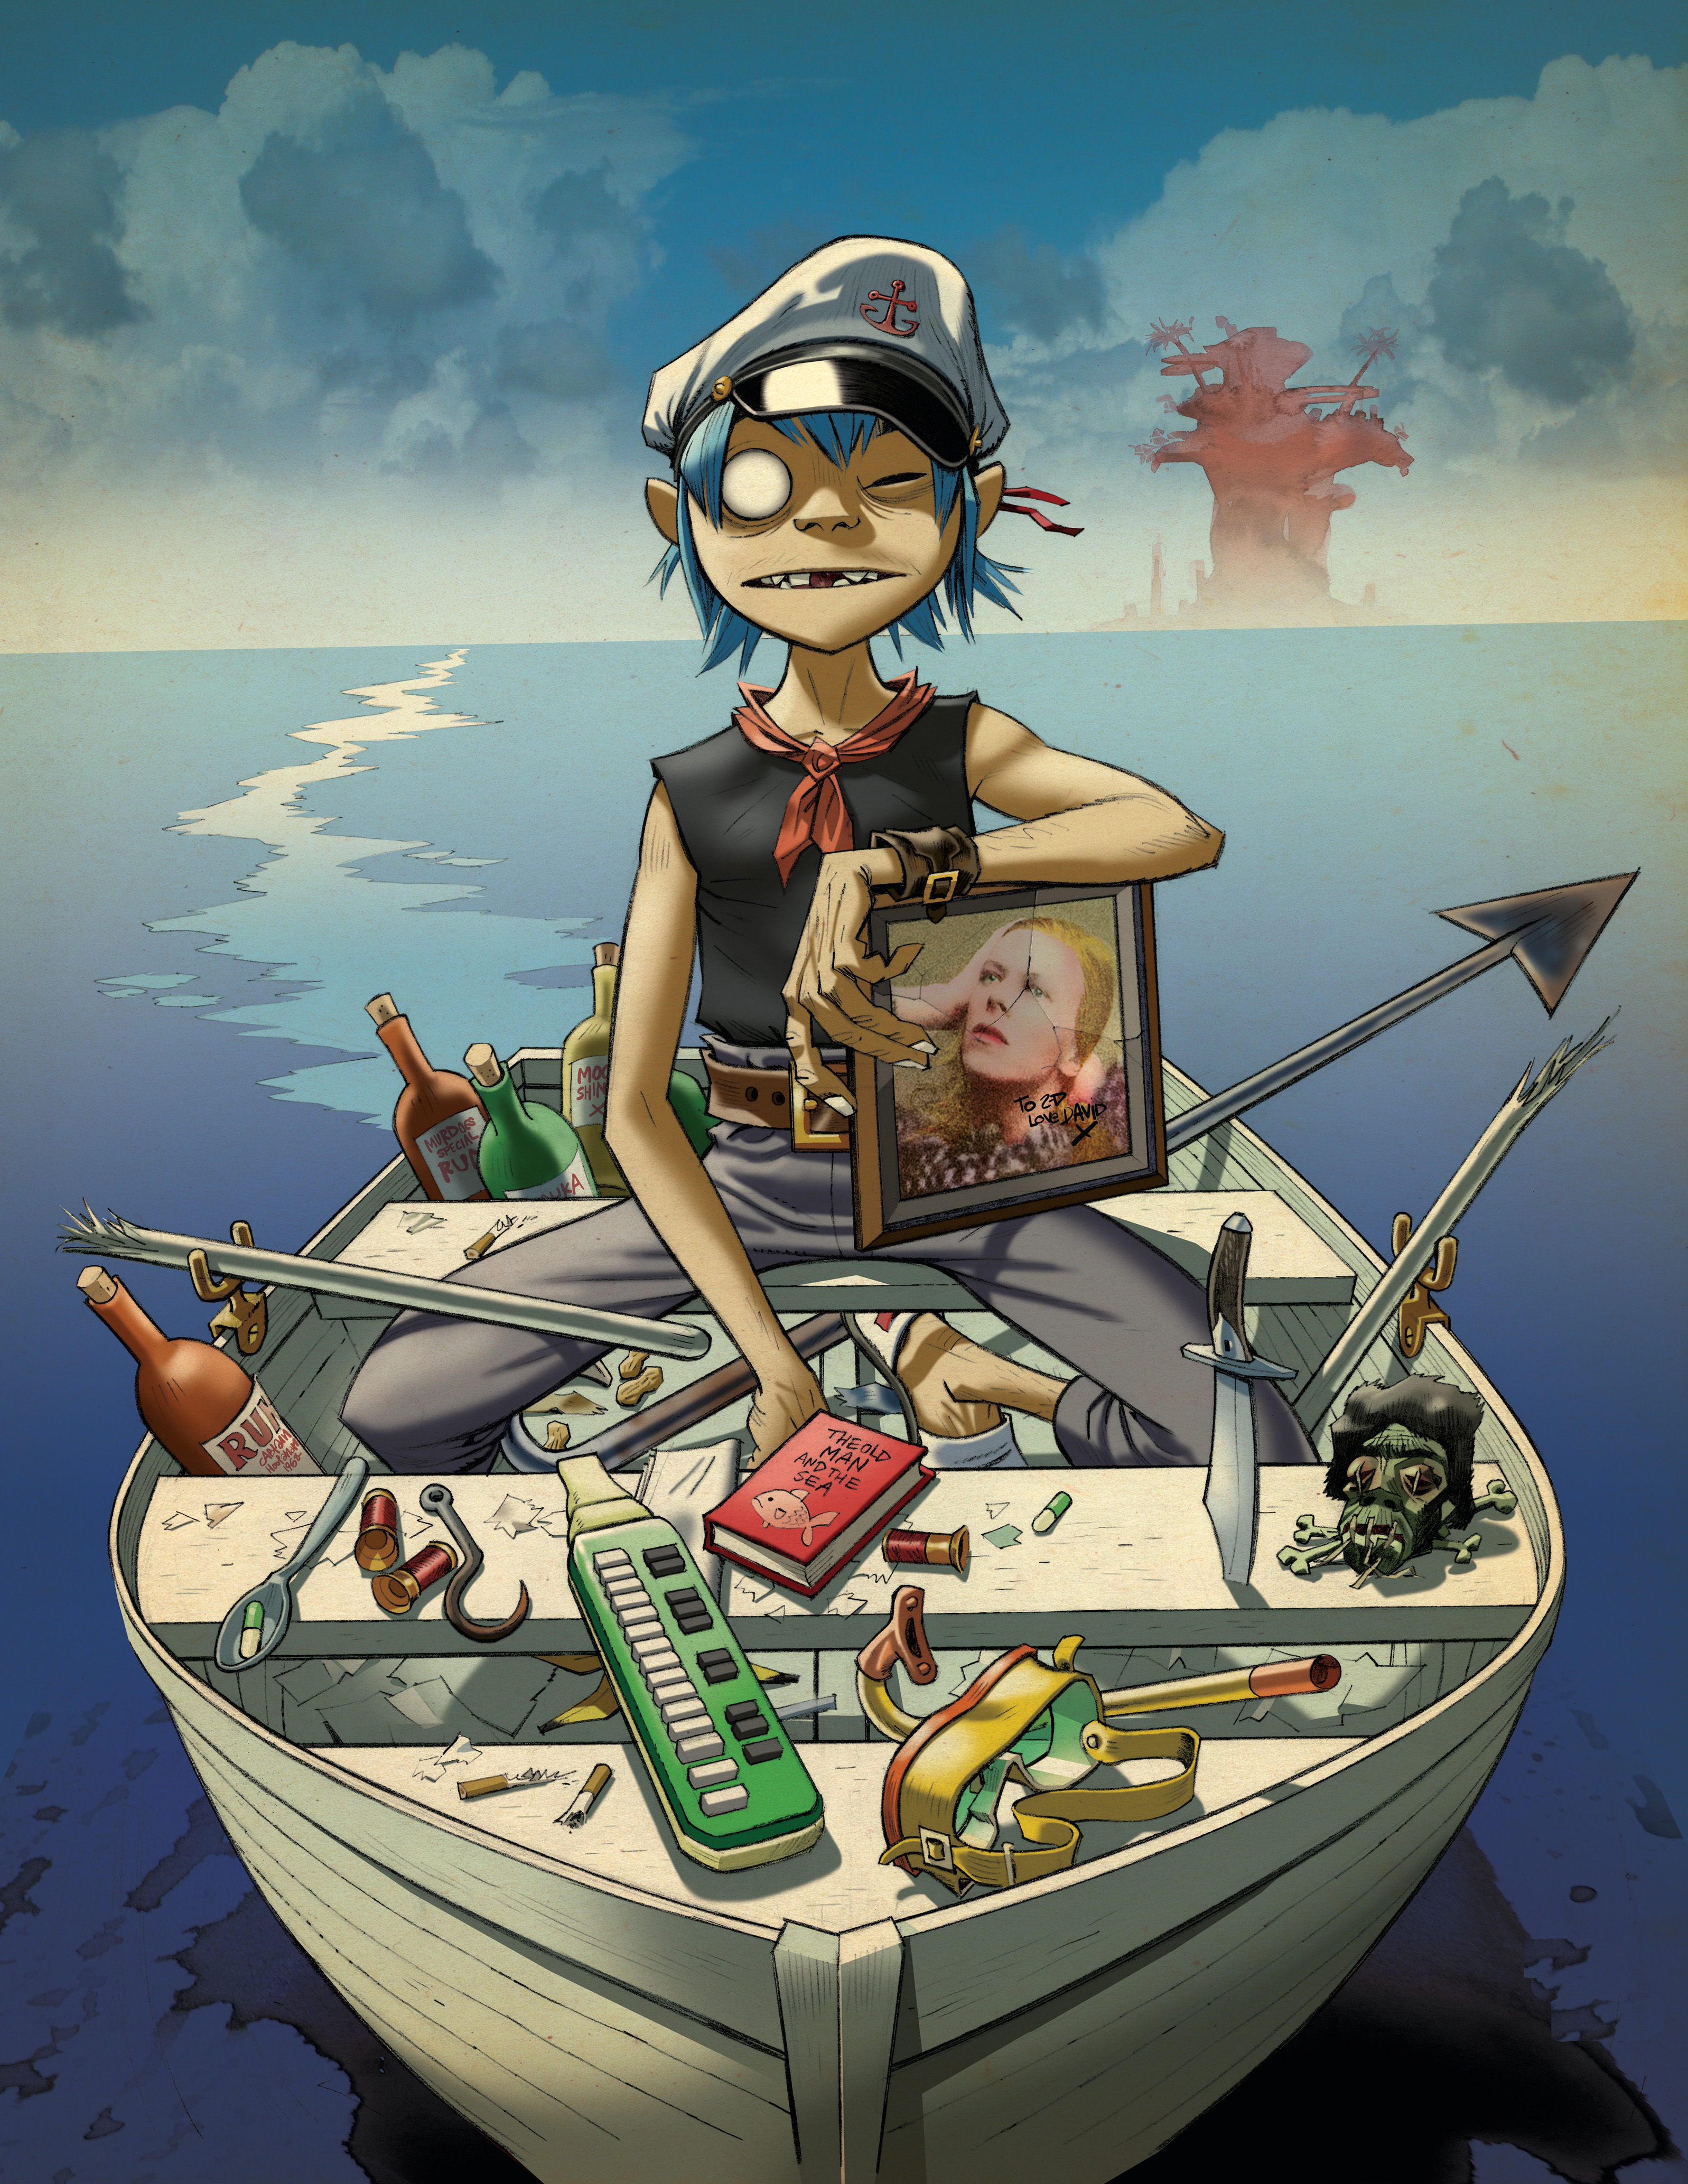 Copyright: © Jamie Hewlett | Caption: p. 169 |The Young Fool and the Sea, 2010 | Album artwork for Gorillaz' Plastic Beach.